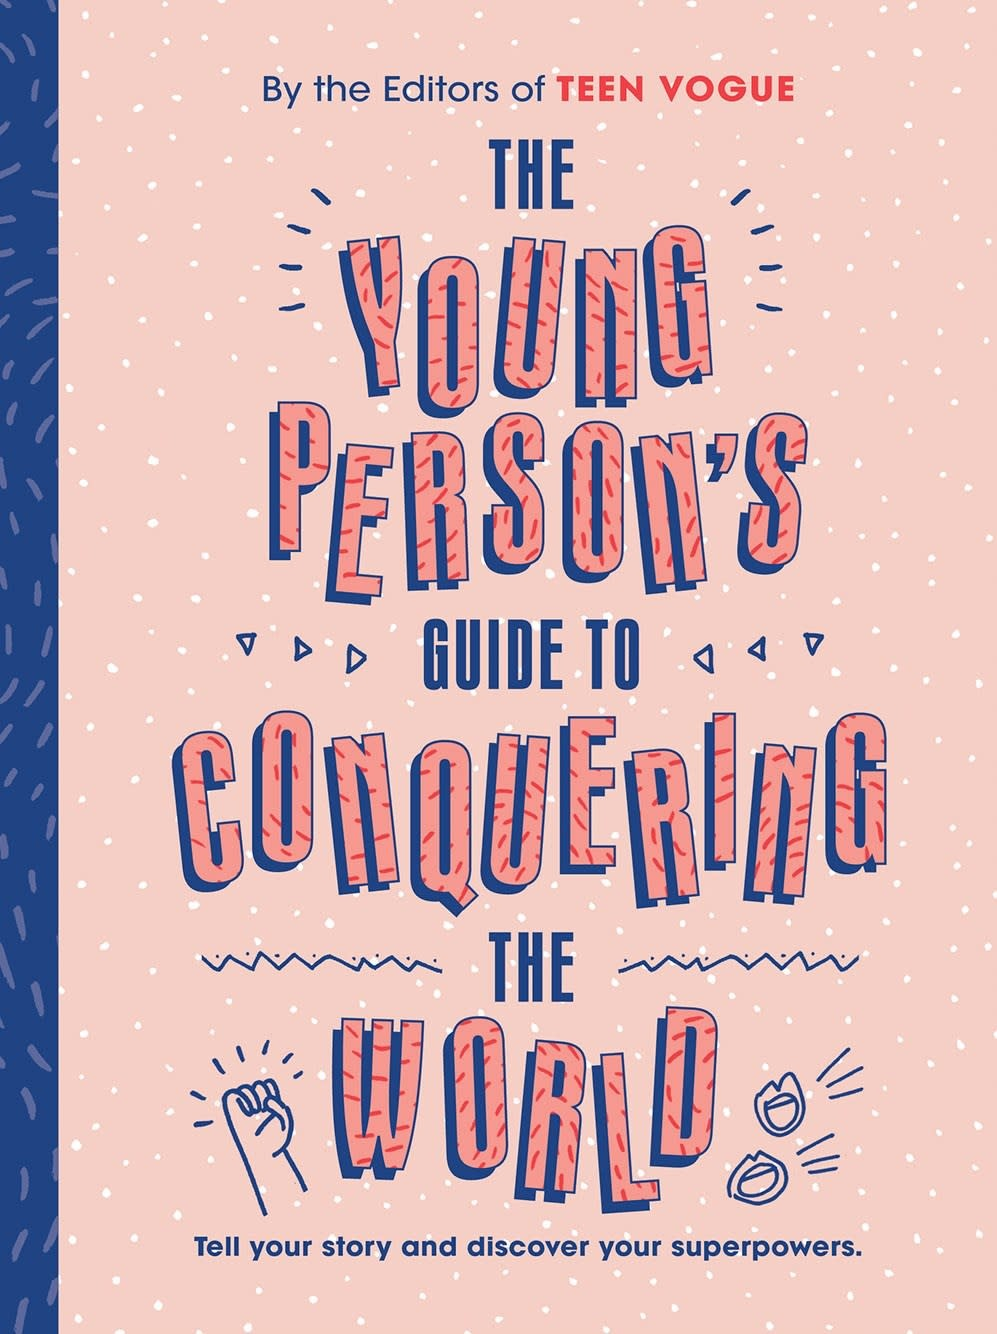 Abrams Noterie Young Person's Guide to Conquering the World (Guided Journal)